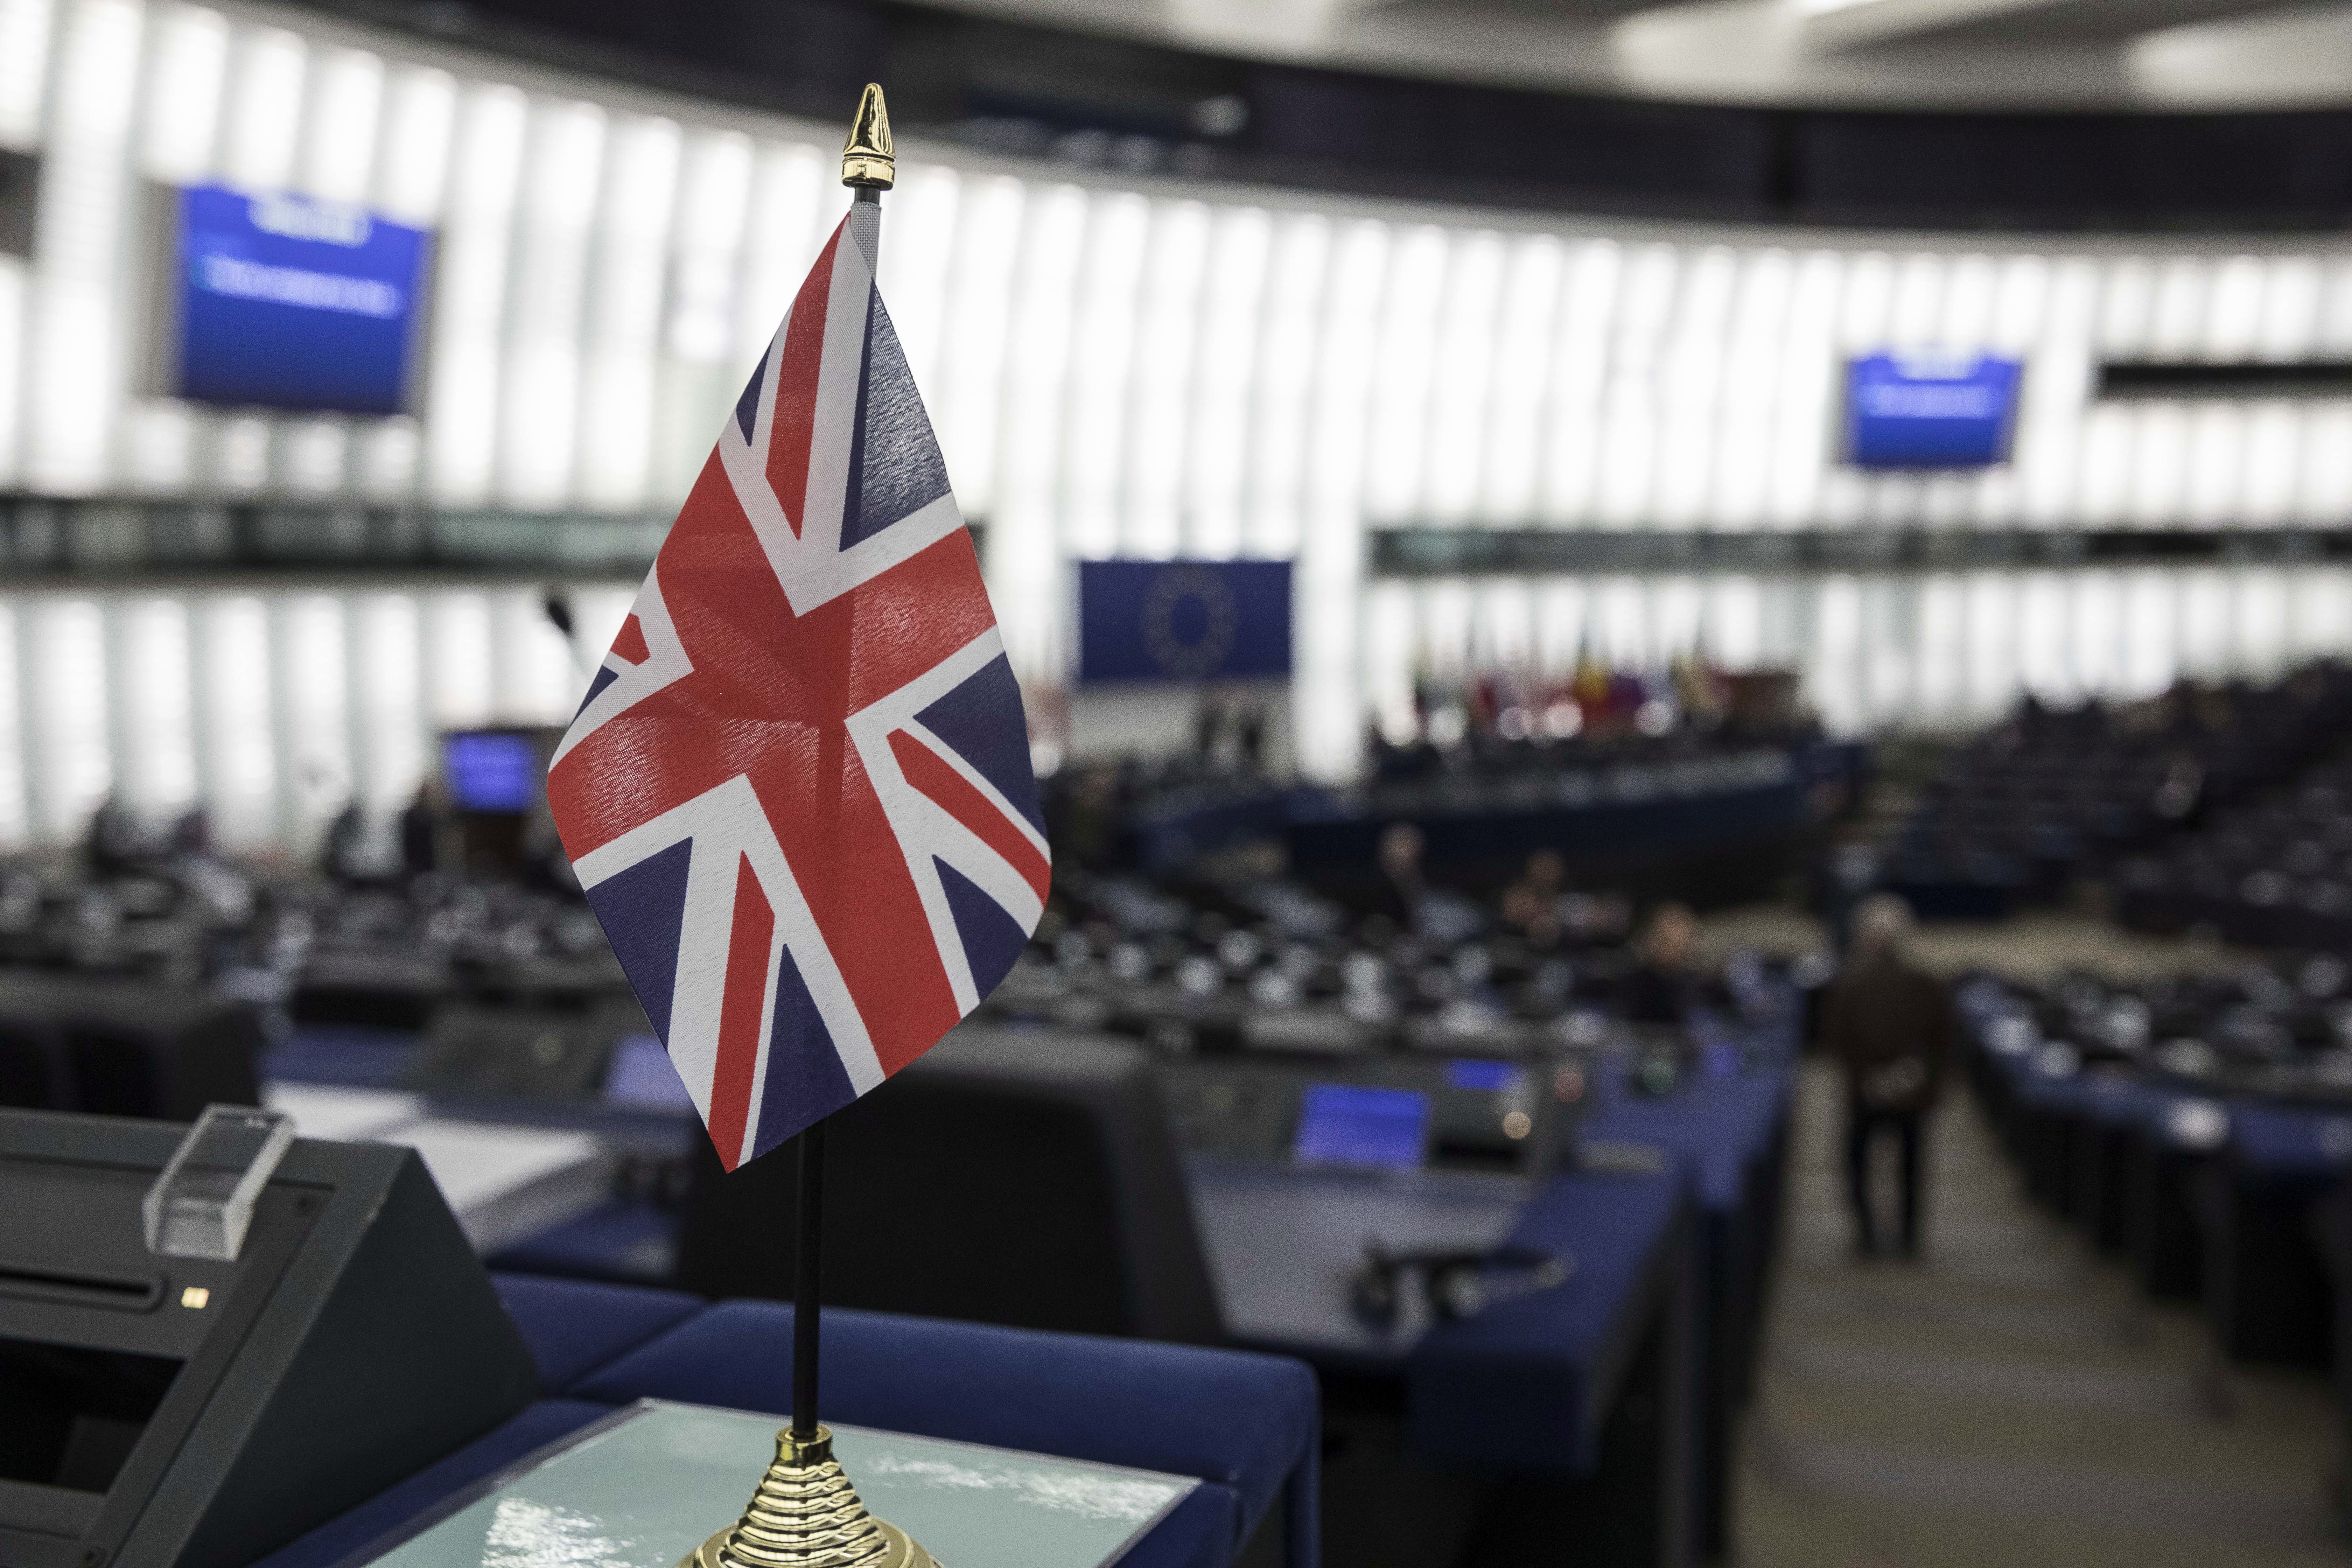 A British flag in the European Parliament during a debate on Brexit on January 16 in Strasbourg.